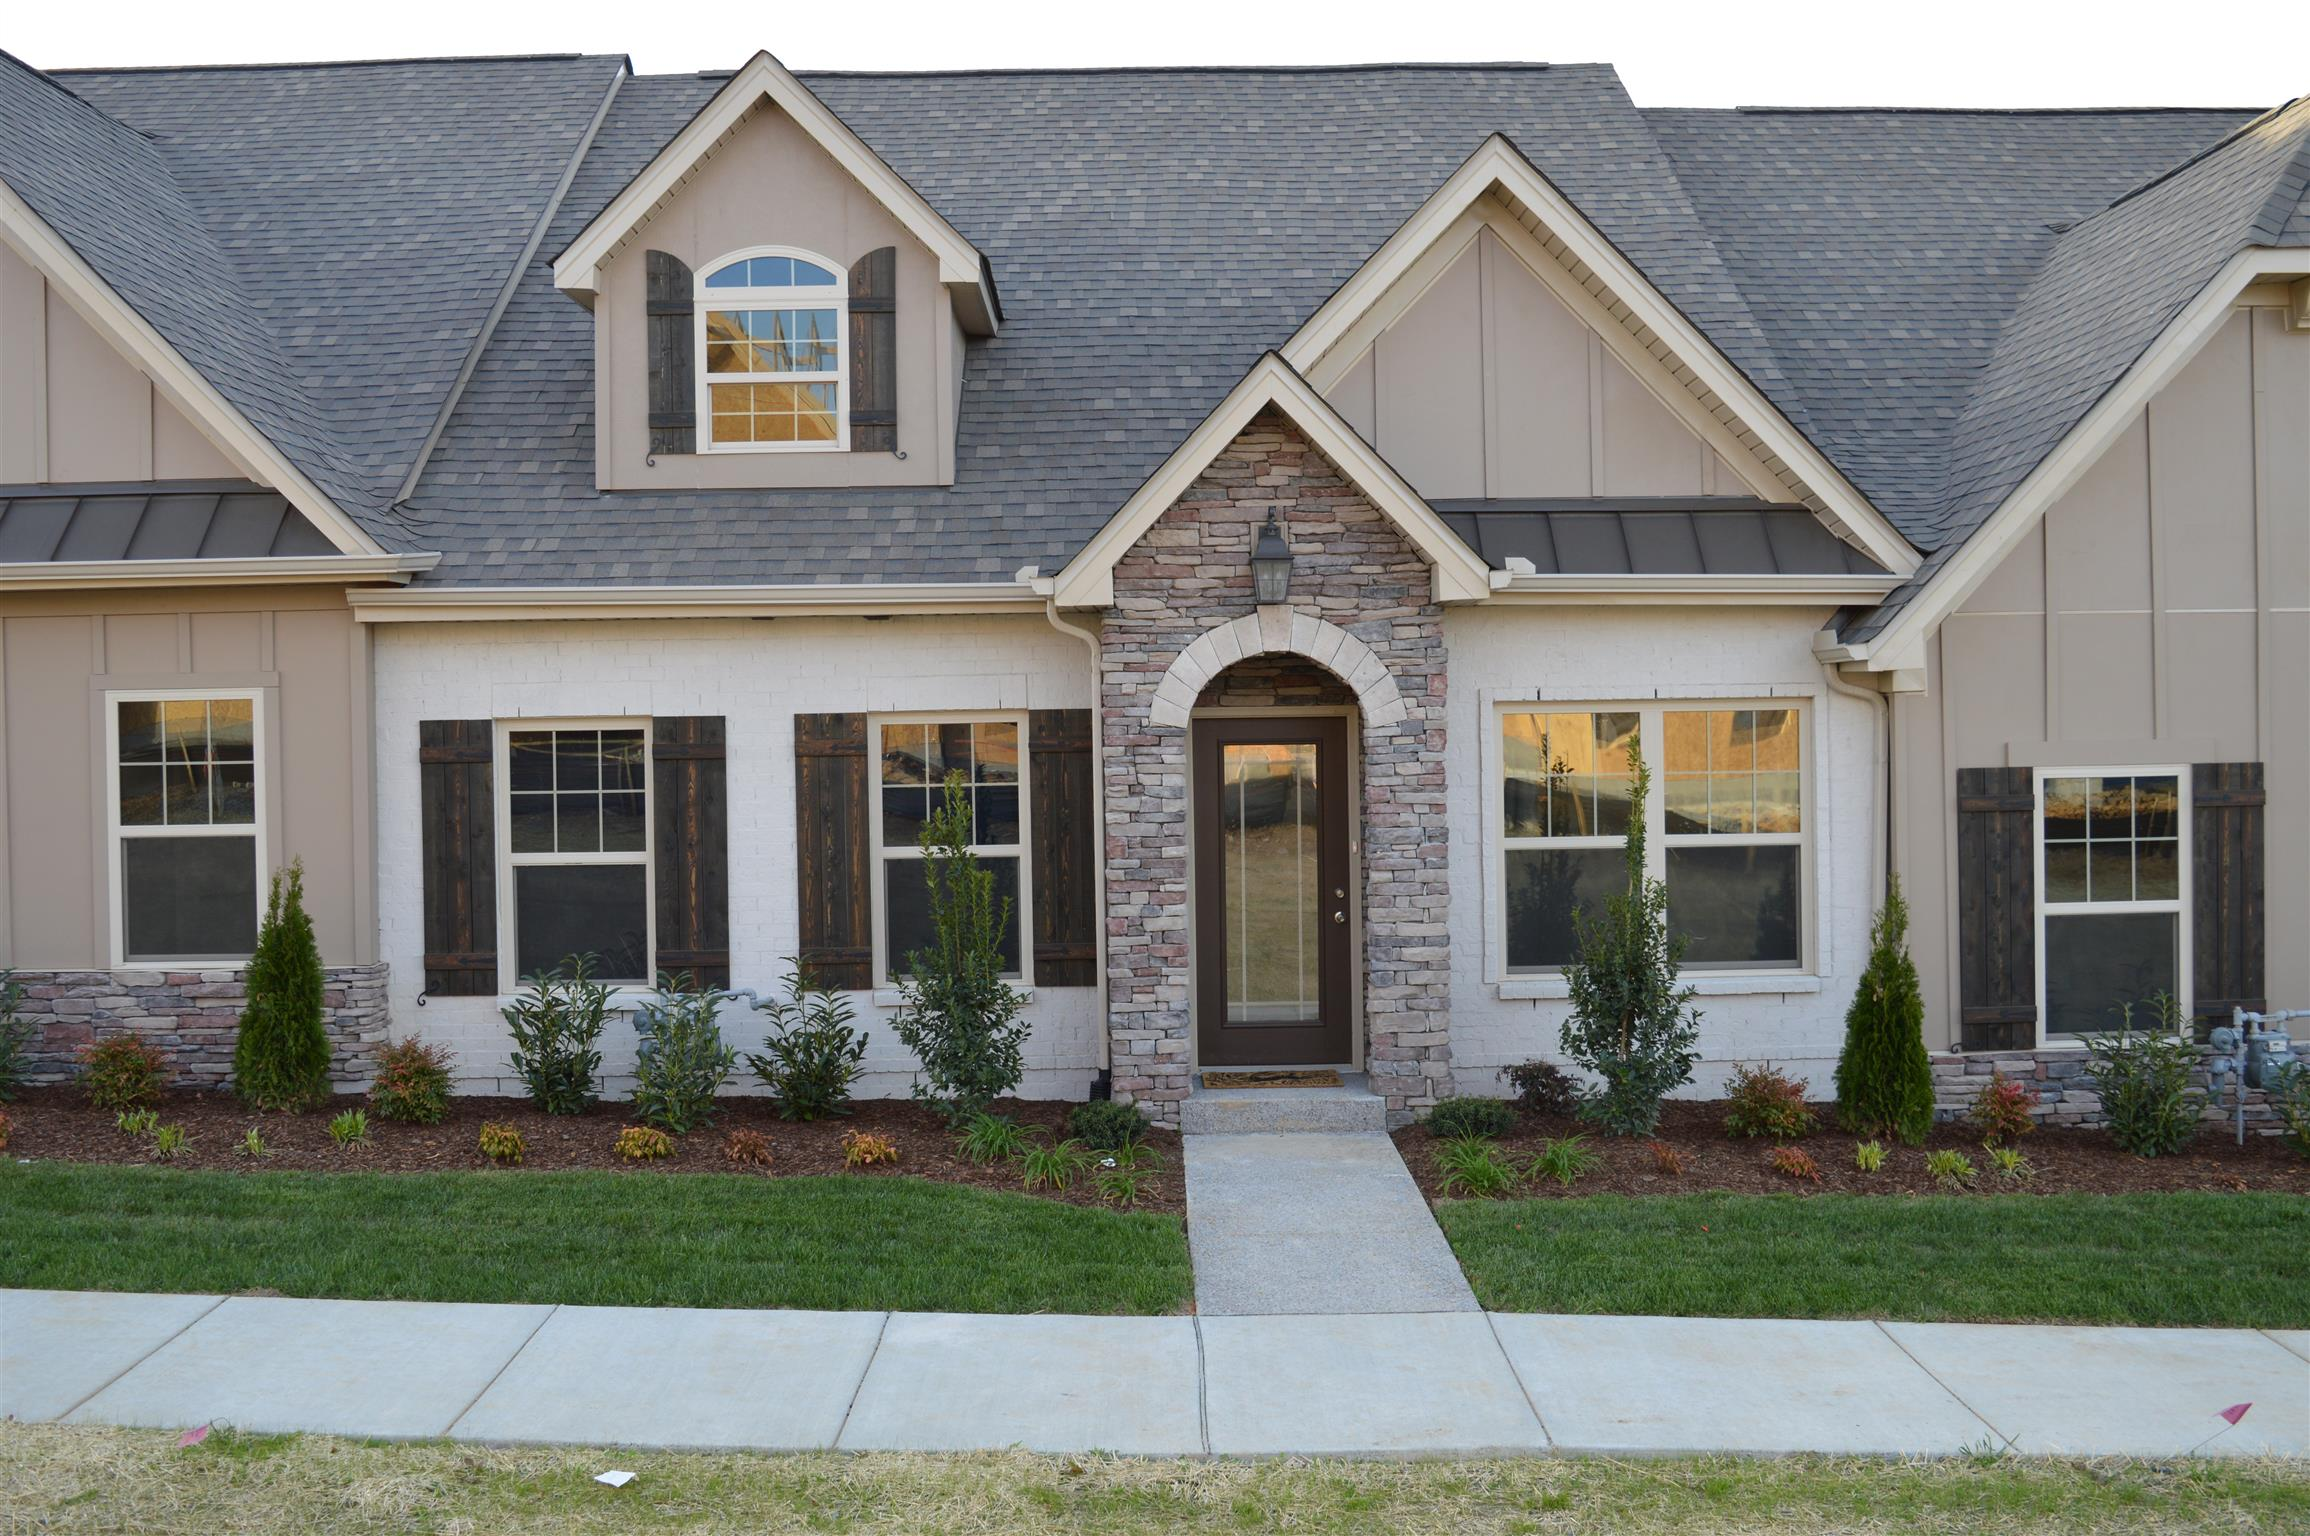 285 Chancery Dr, Gallatin, Tennessee